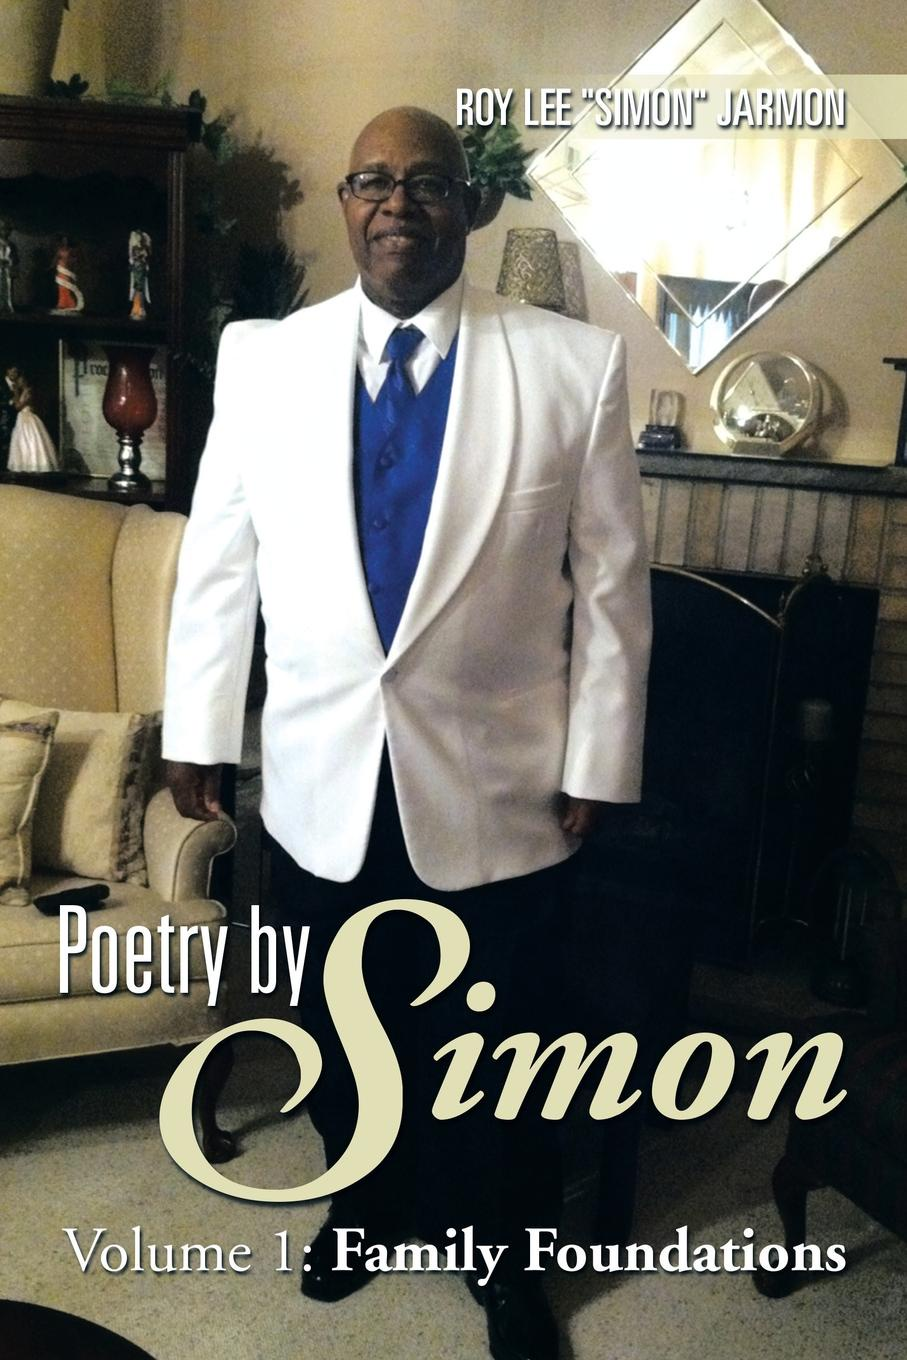 Roy Lee ''Simon'' Jarmon Poetry by Simon. Volume 1: Family Foundations adrian rogers foundations for our faith volume 1 2nd edition romans 1 4